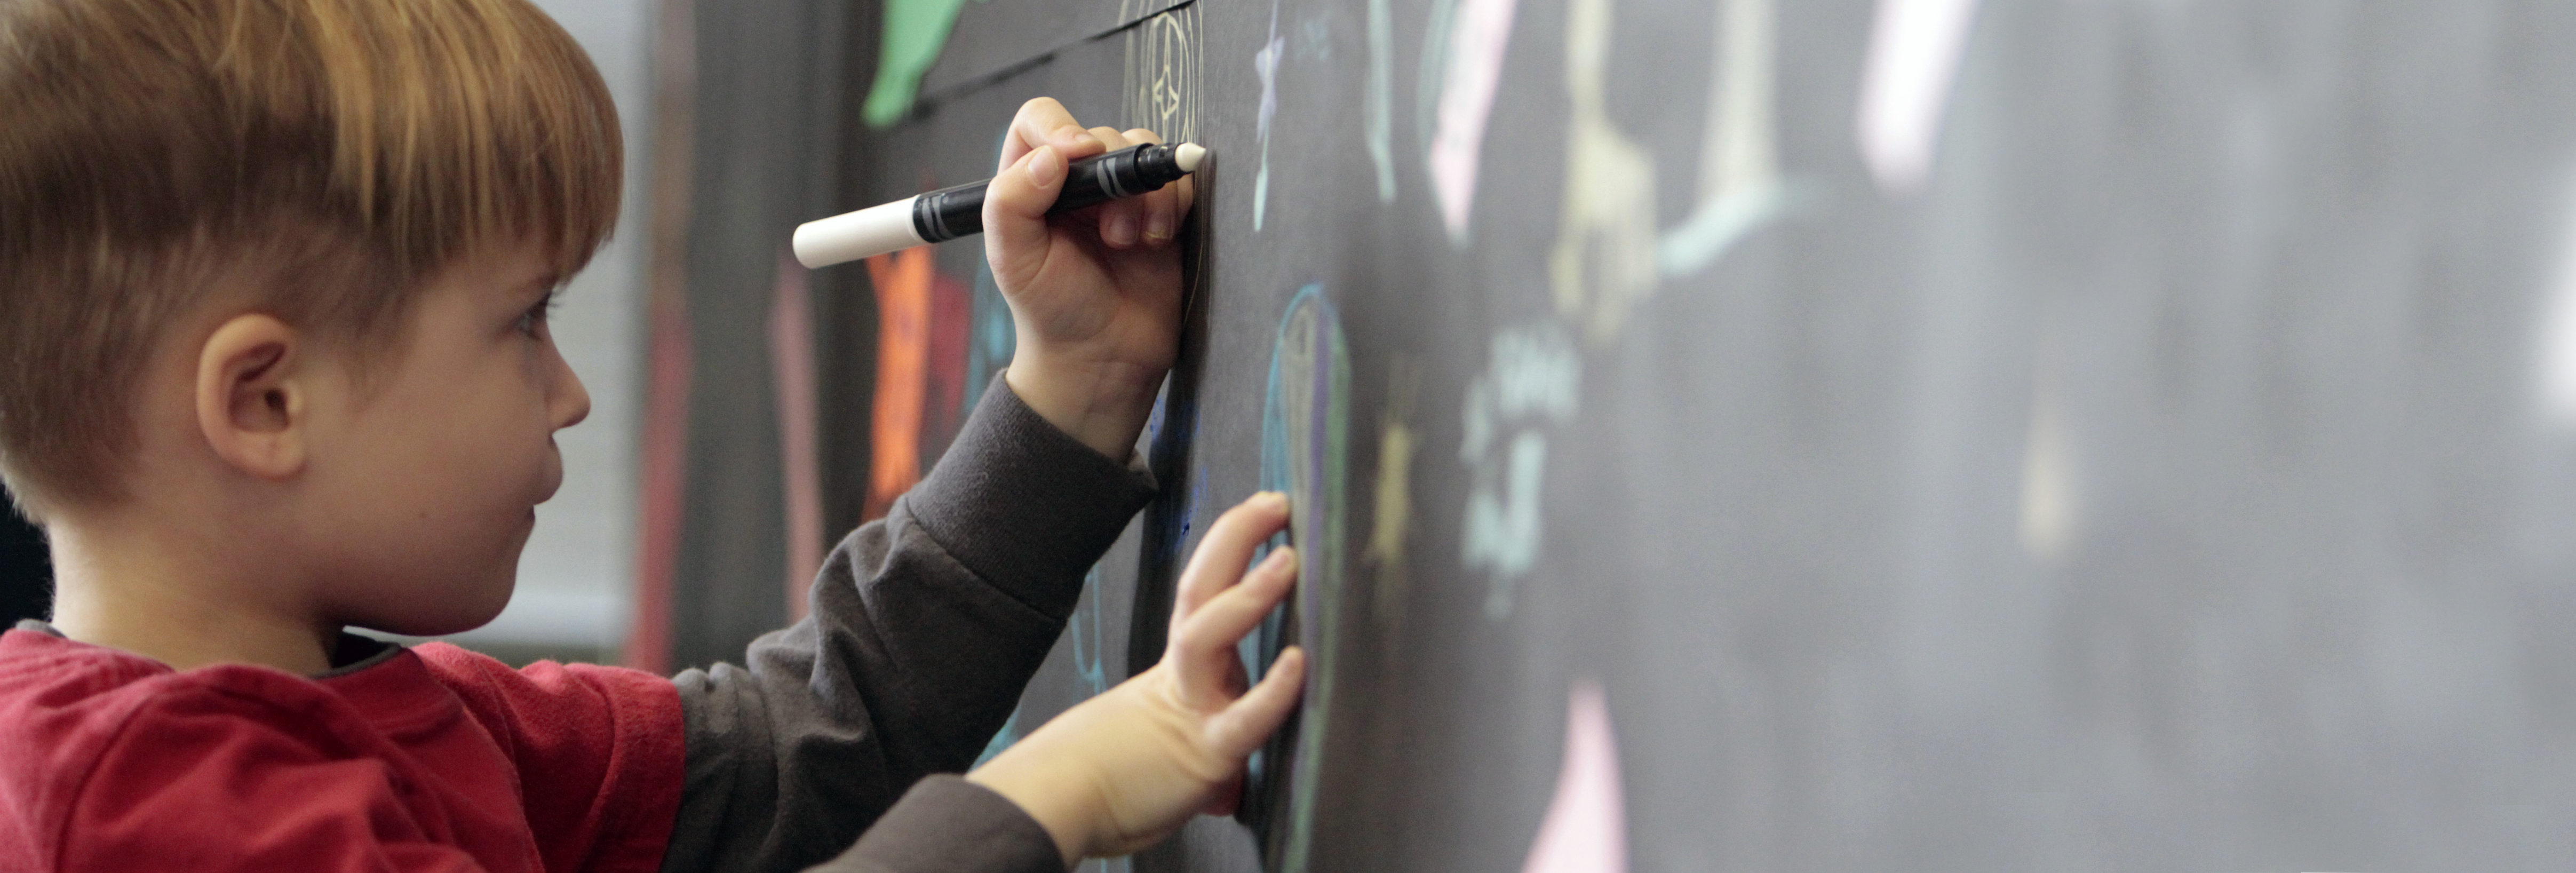 child drawing pictures on a blackboard